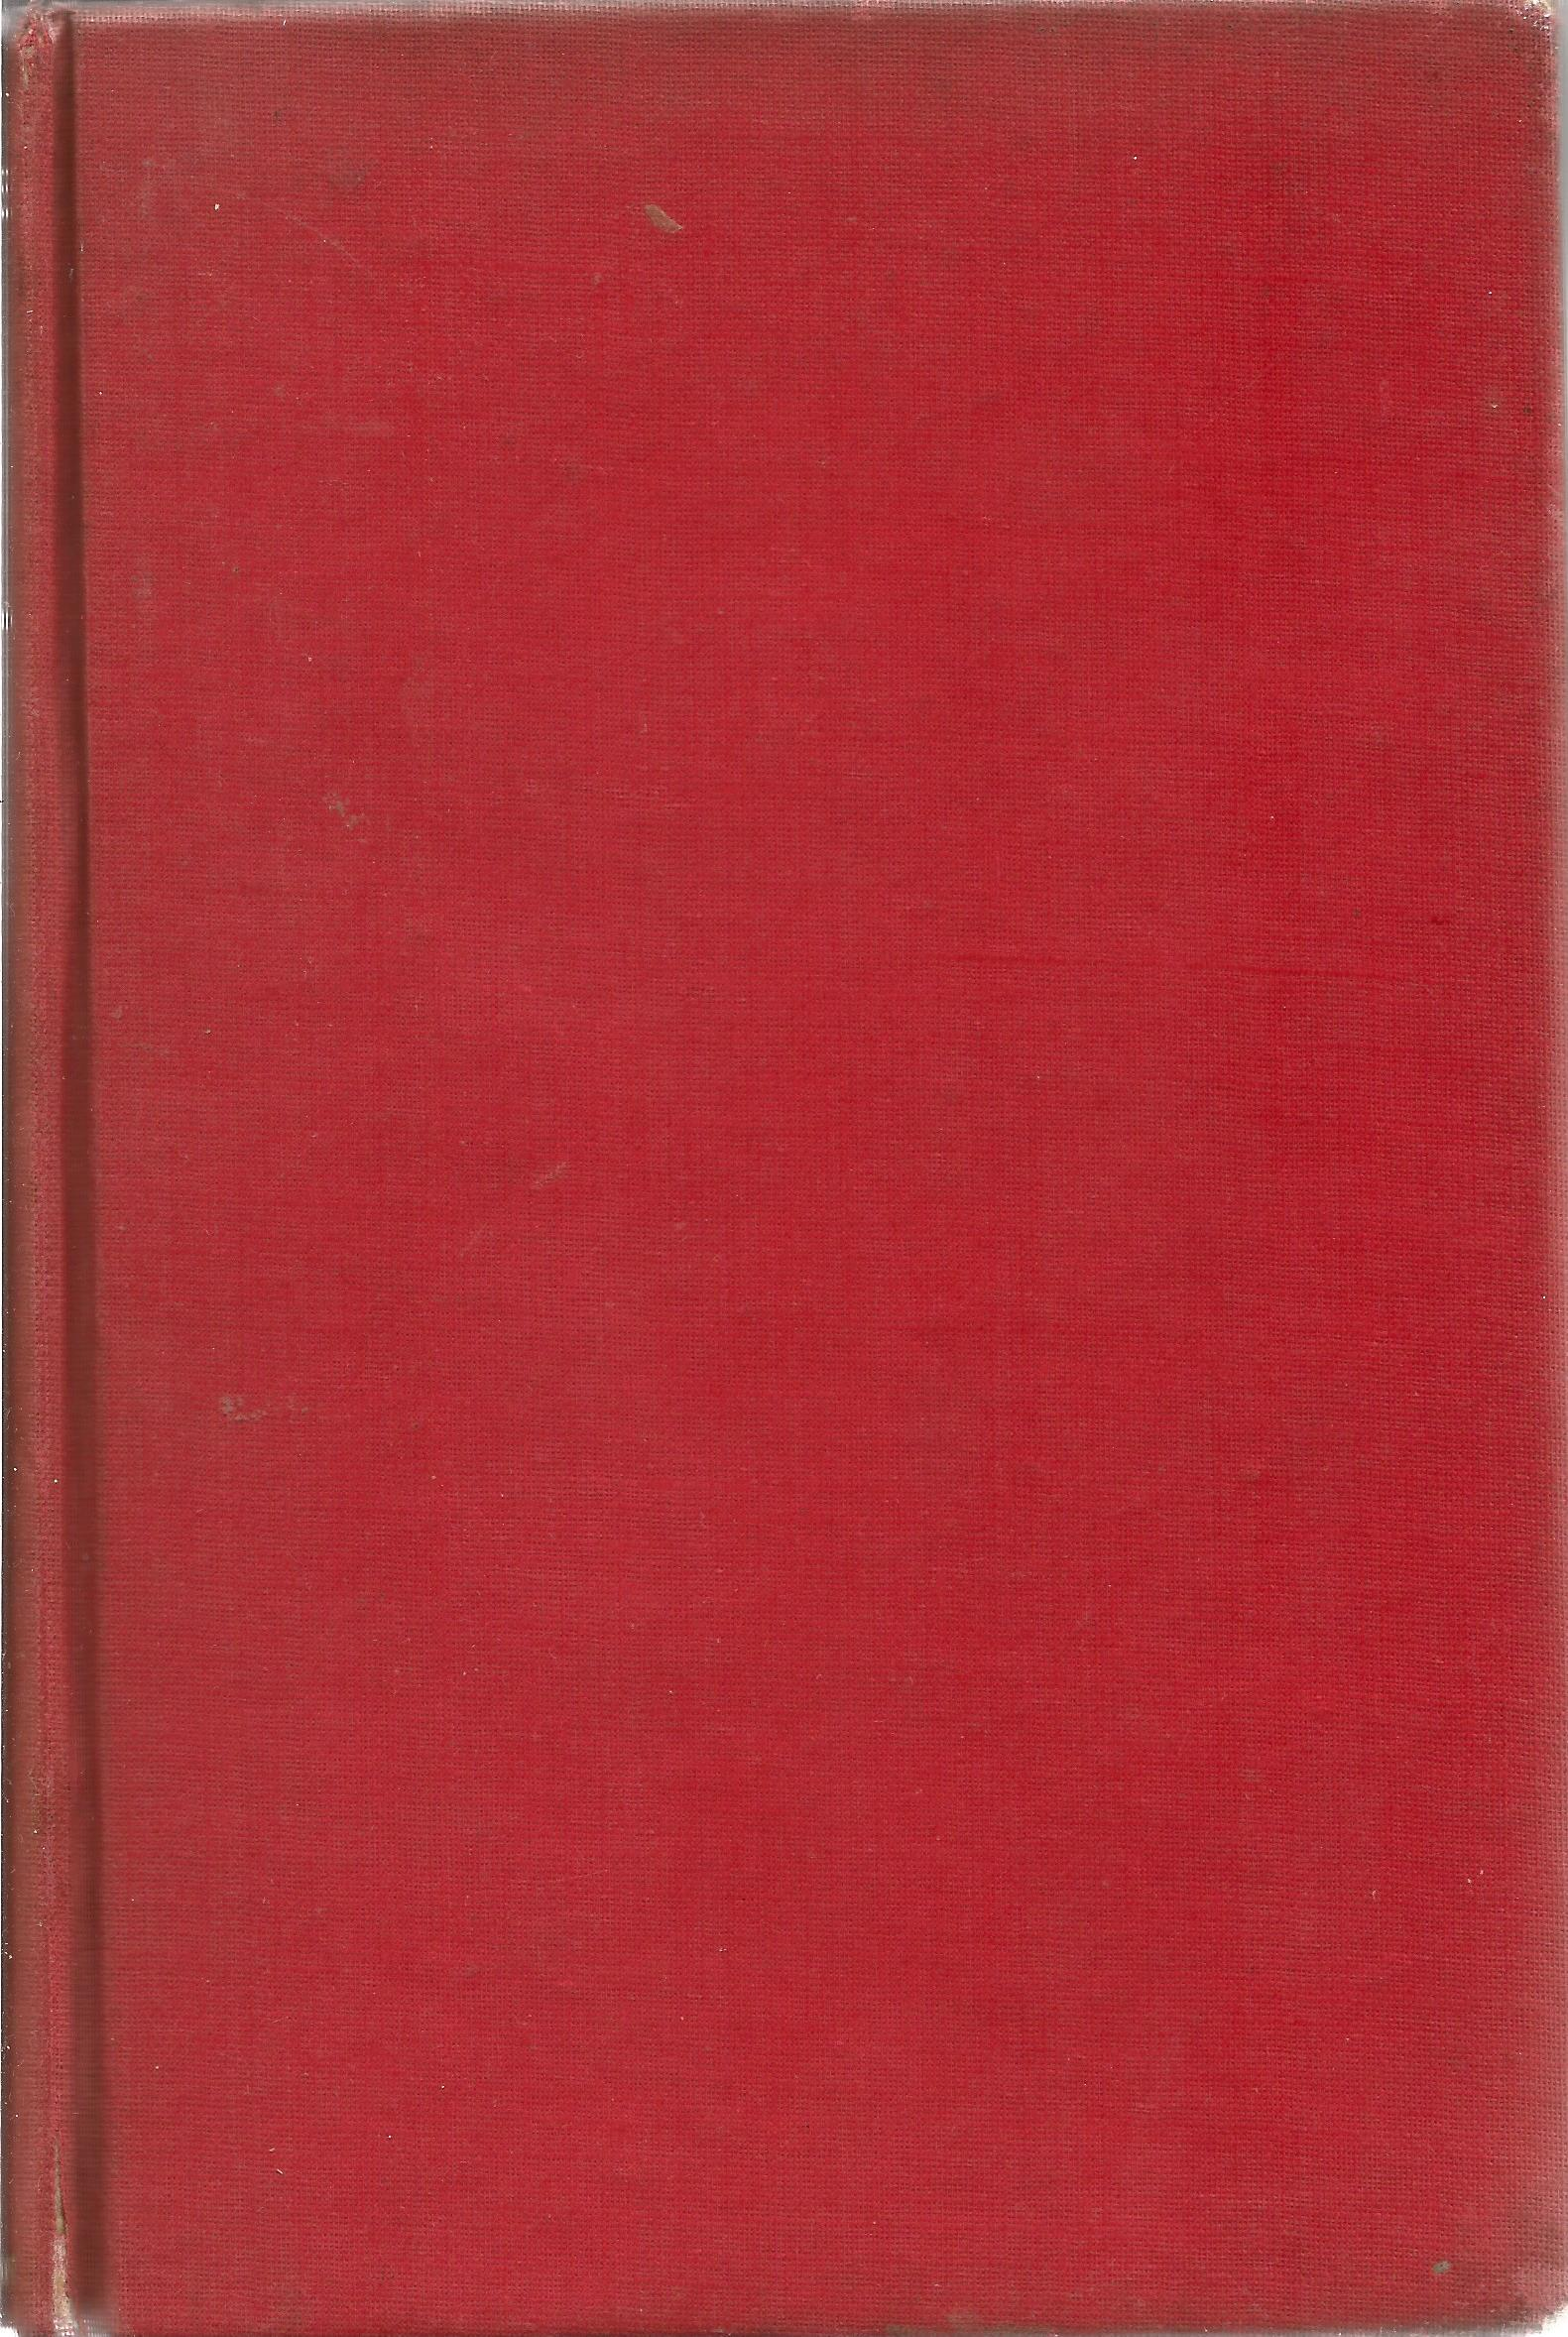 Sir Archibald McIndoe Family Photo Album plus 5 Hardback Books from His personal collection - Image 13 of 23